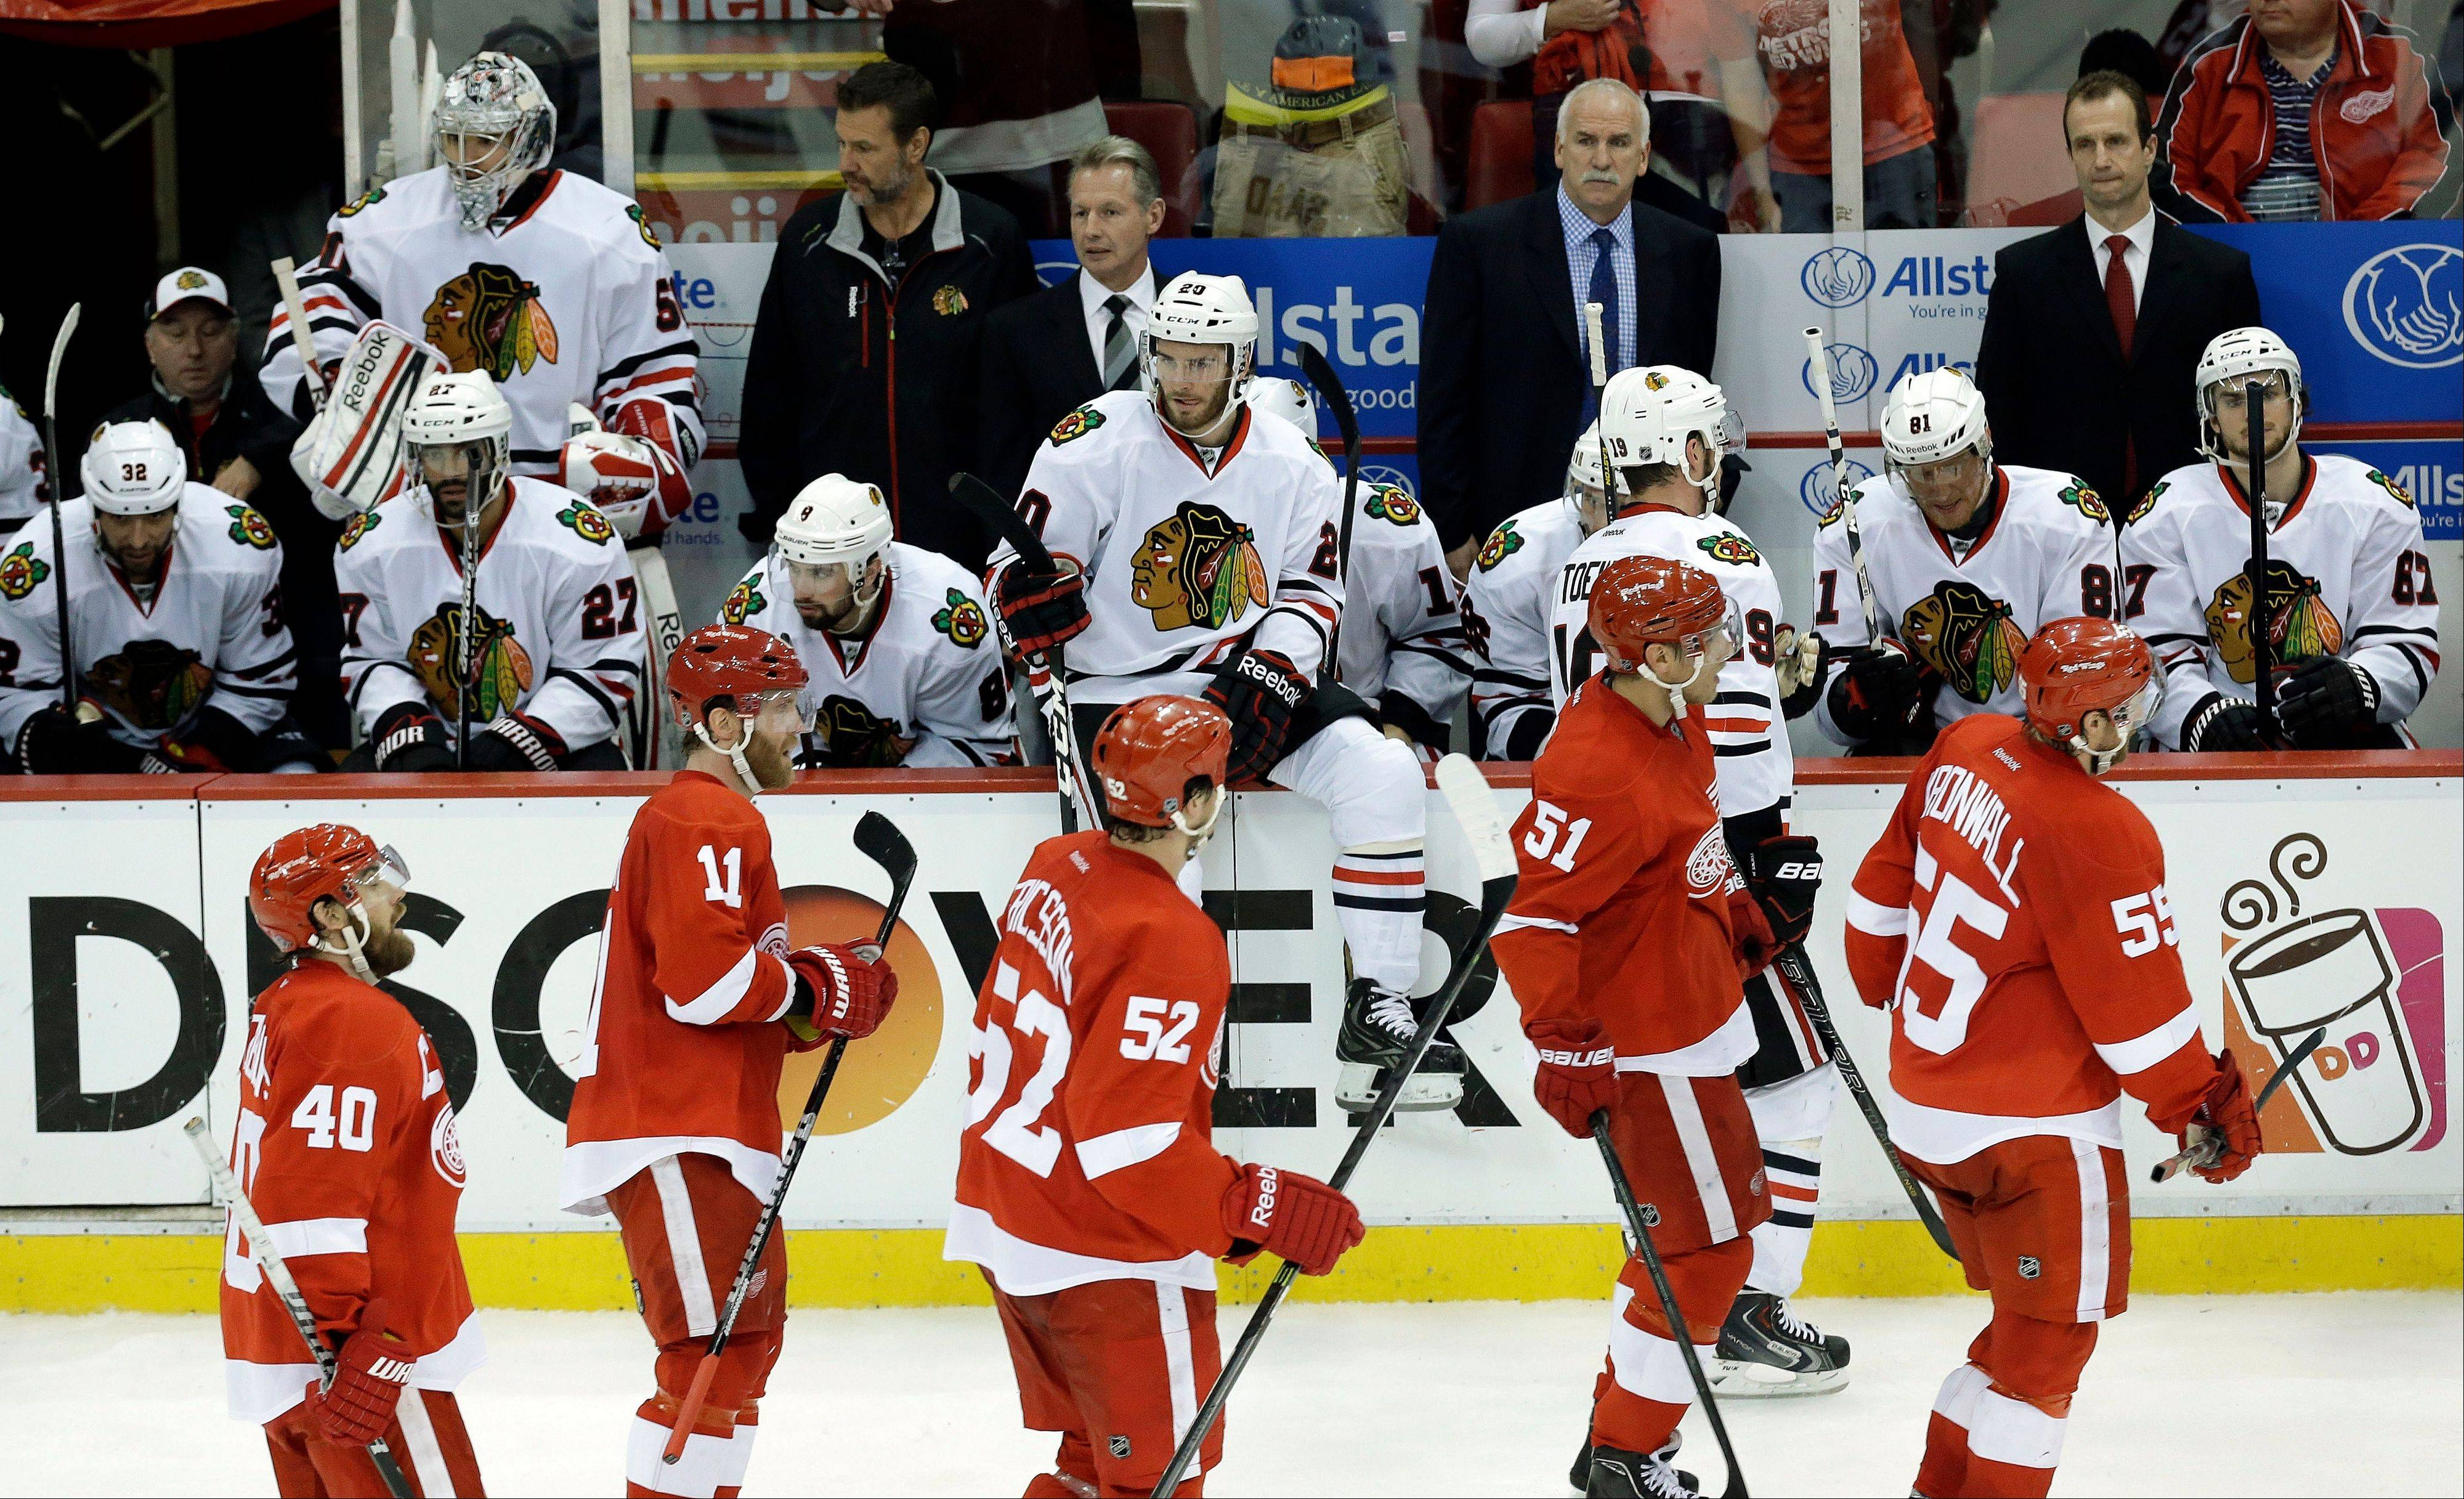 Detroit Red Wings, foreground, skate past the Chicago Blackhawks bench after Daniel Cleary's empty-net goal during the third period.